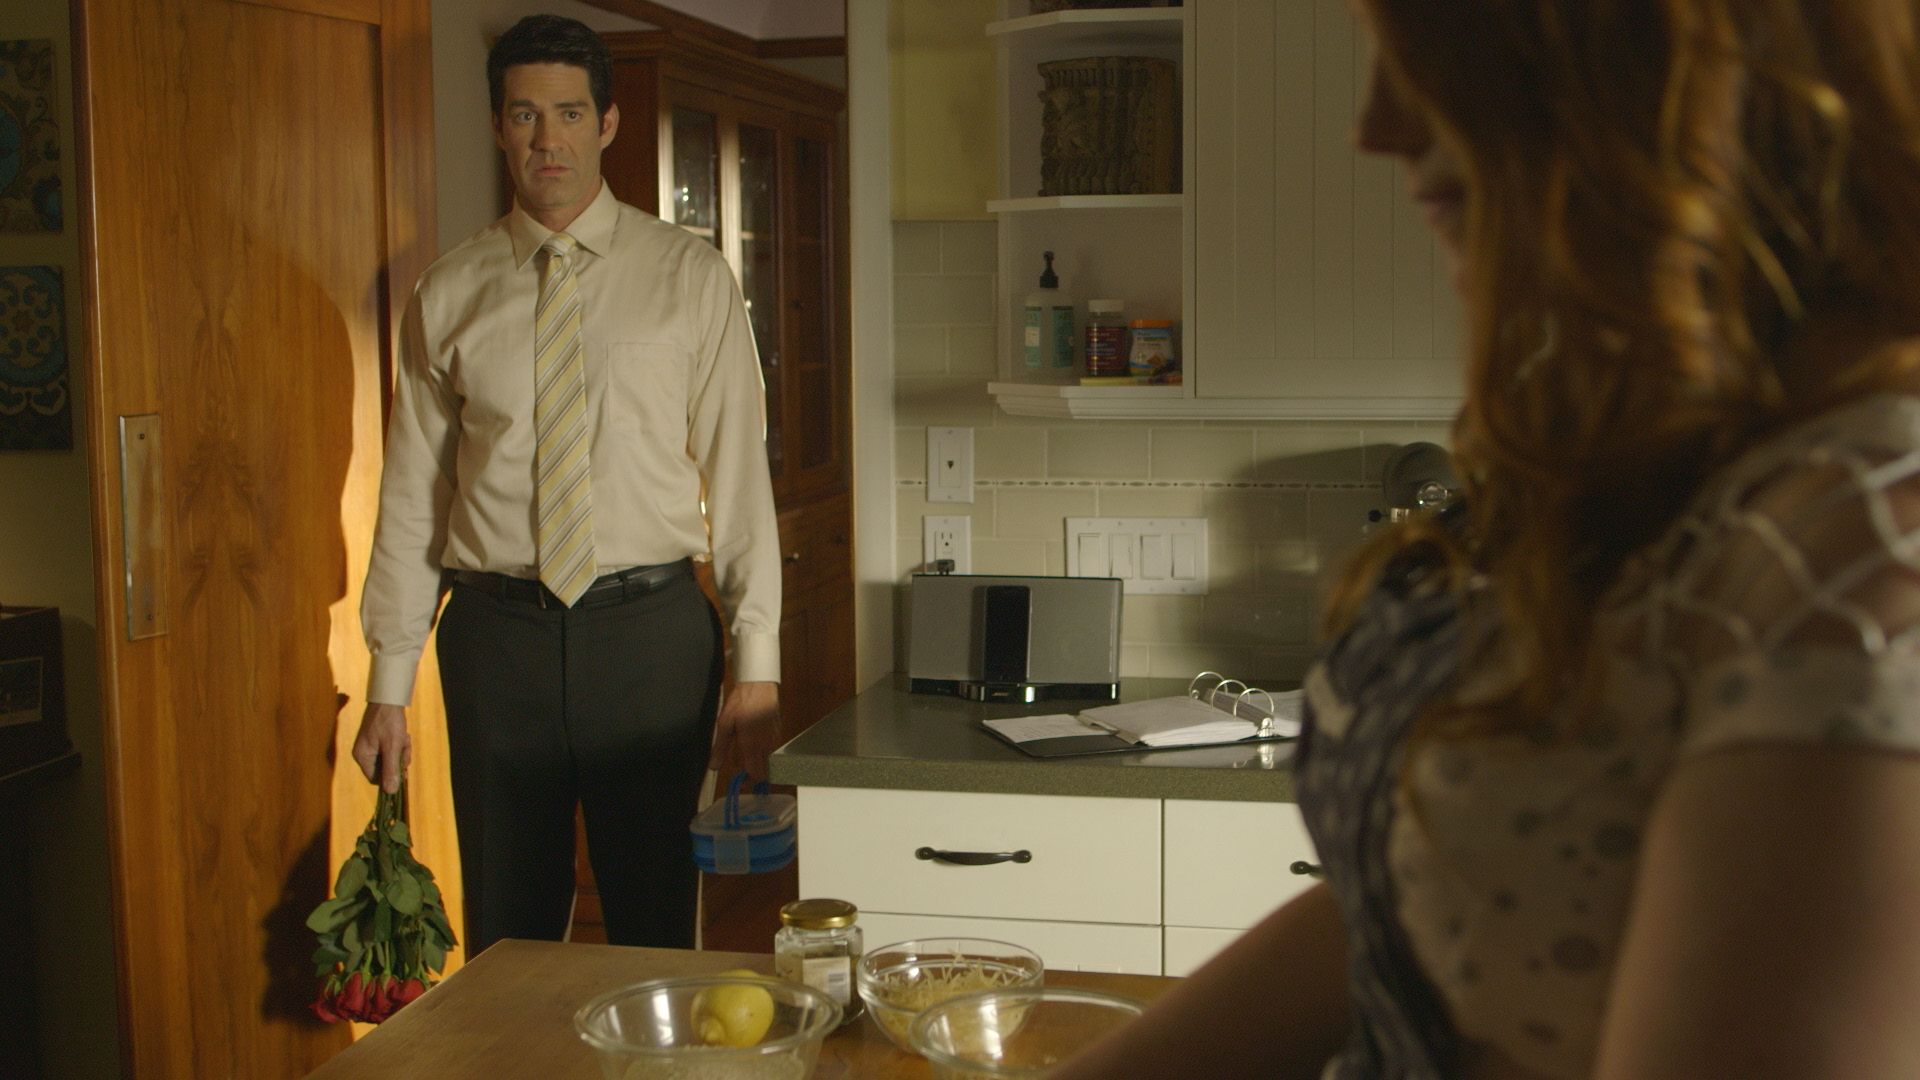 screen shot (Gerald in kitchen).jpg